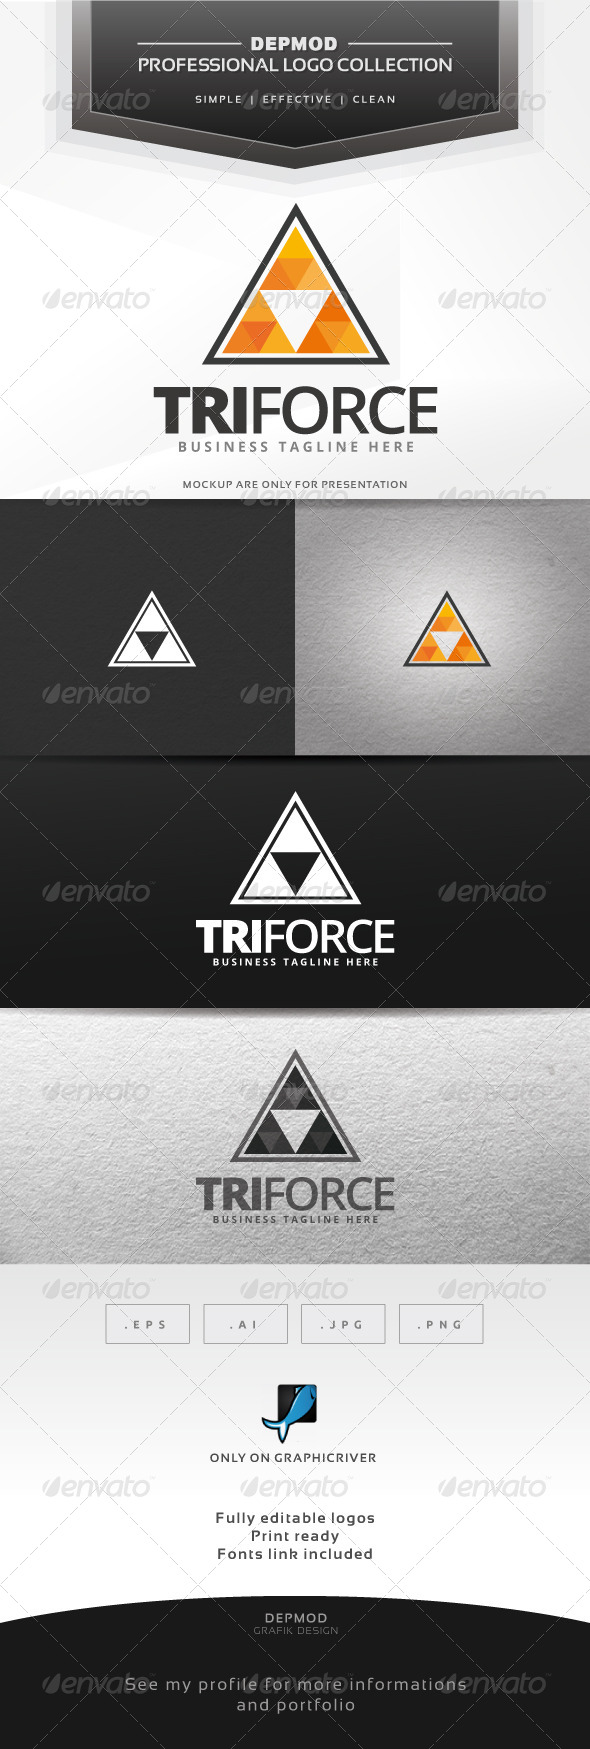 GraphicRiver Tri Force Logo 6826433